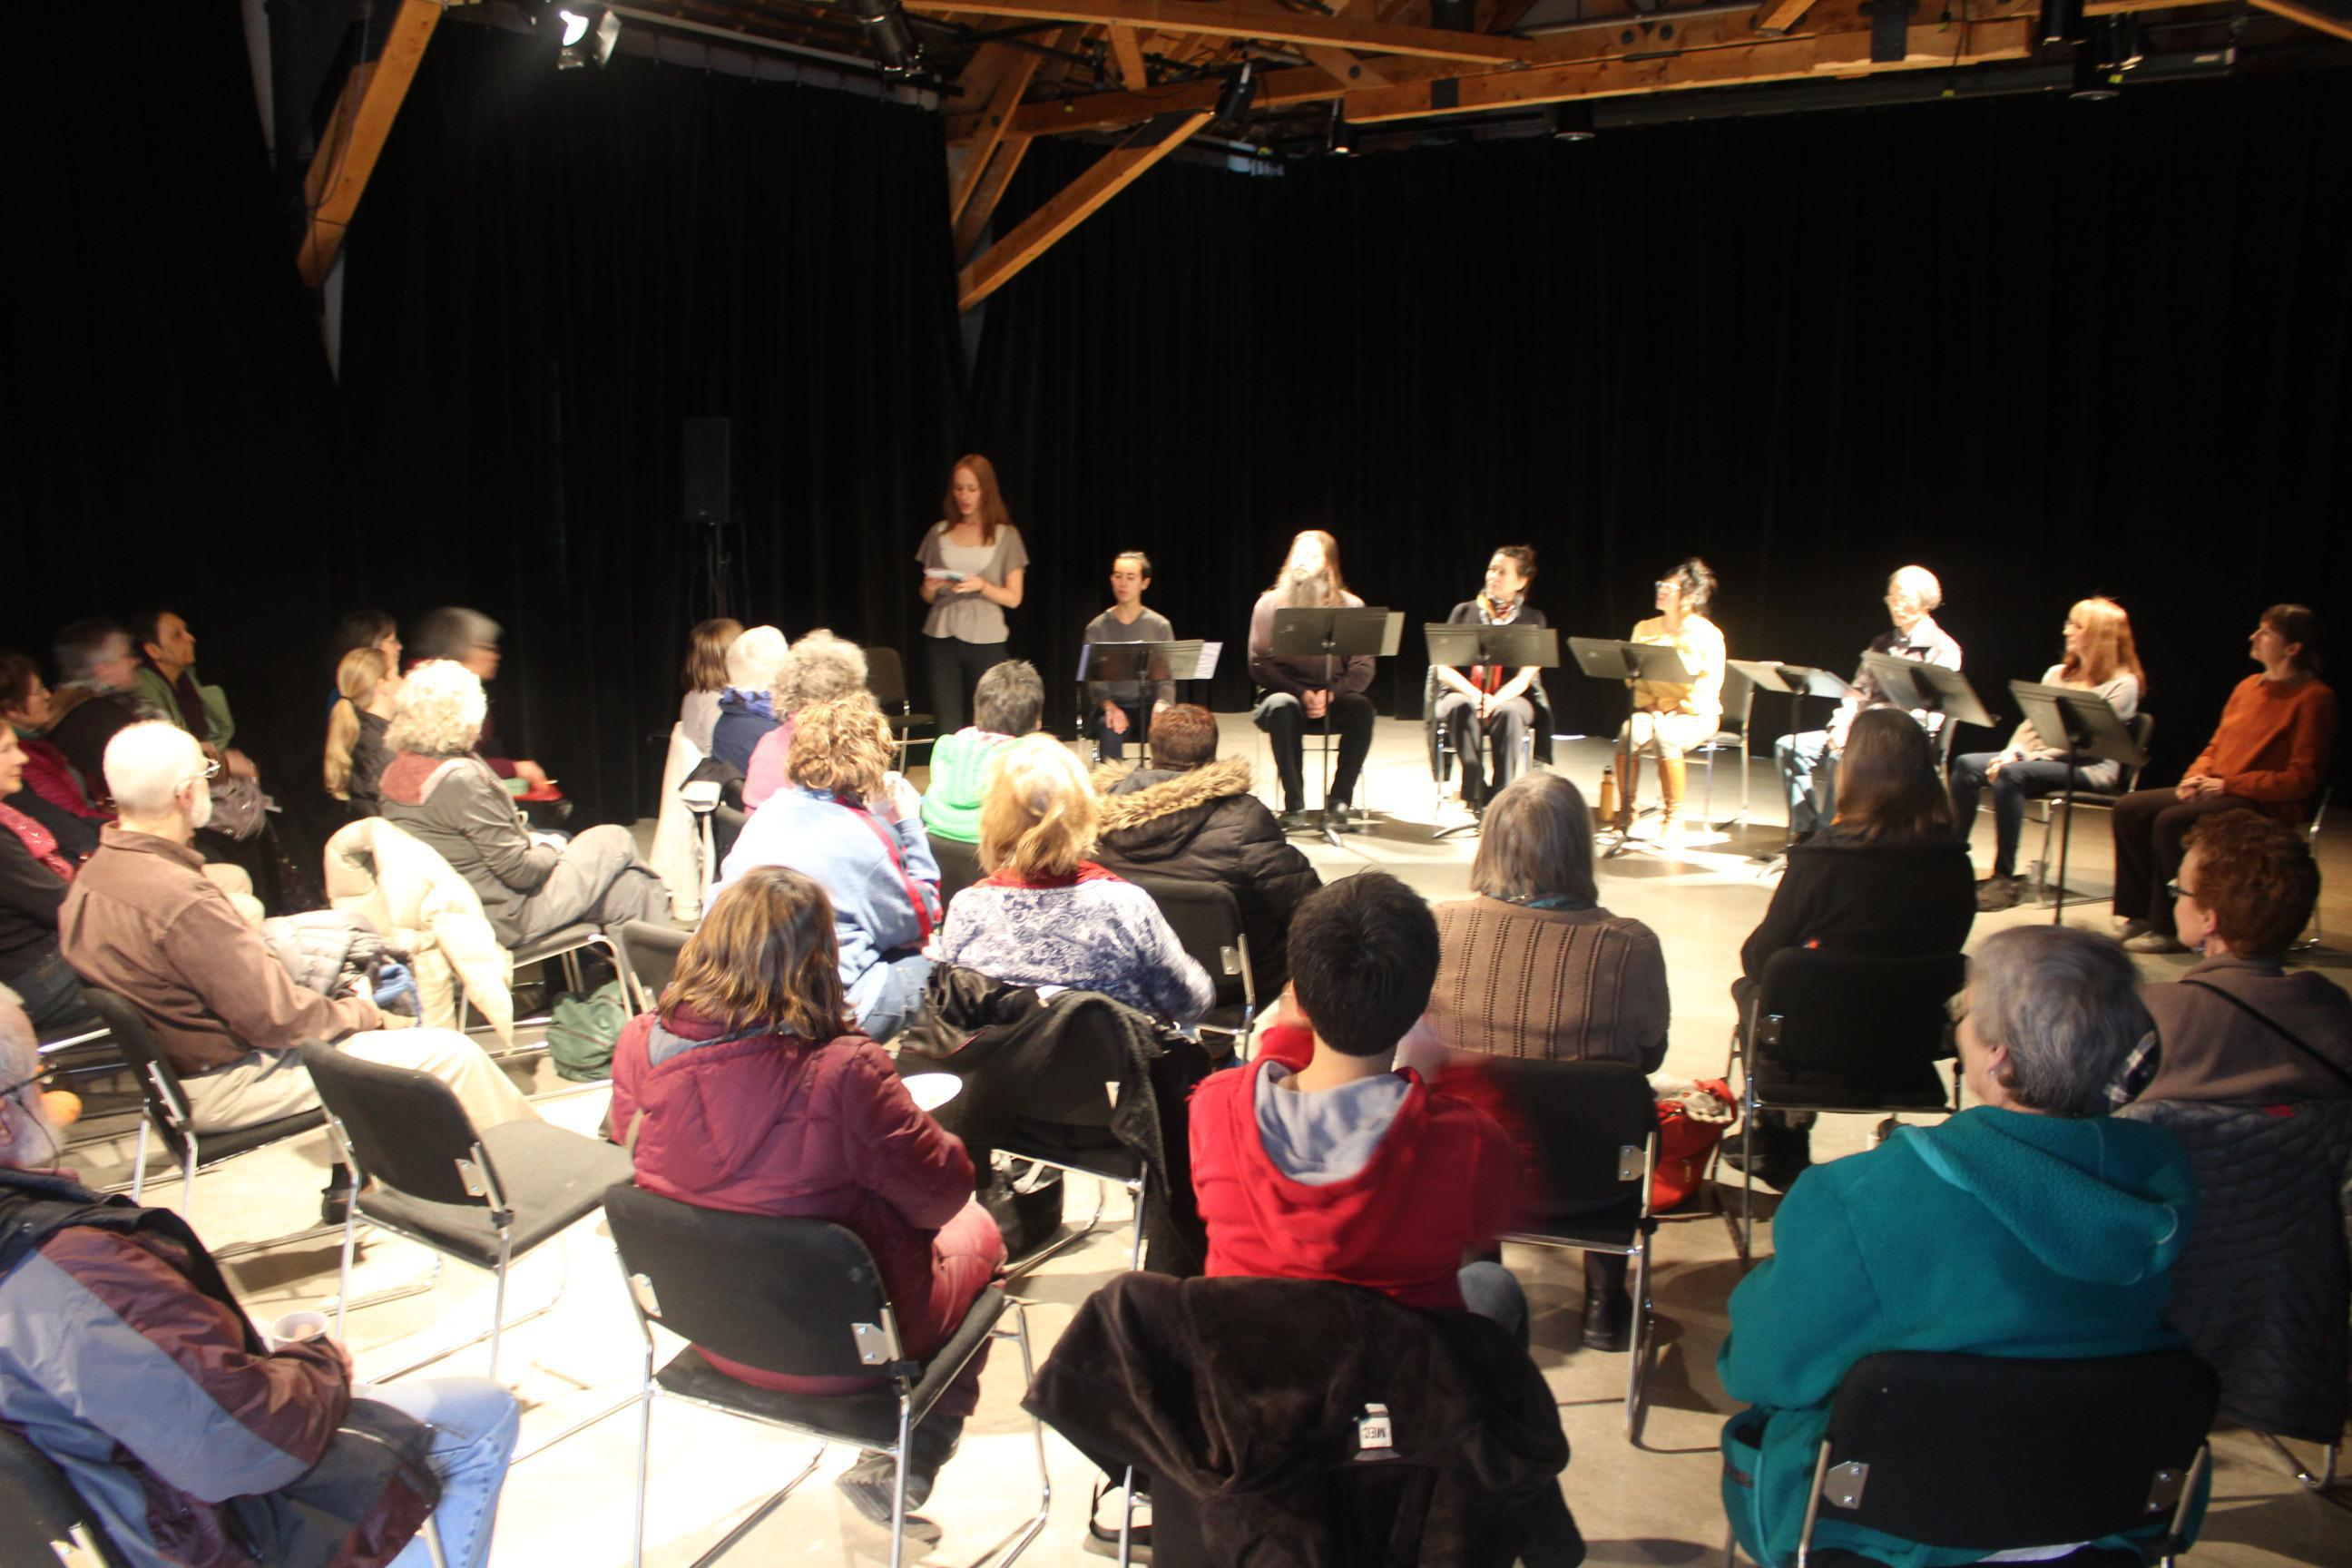 Lillian Nakamura Maguire's reading with Gwaandak Theatre. Photo credit: Gwaandak Theatre